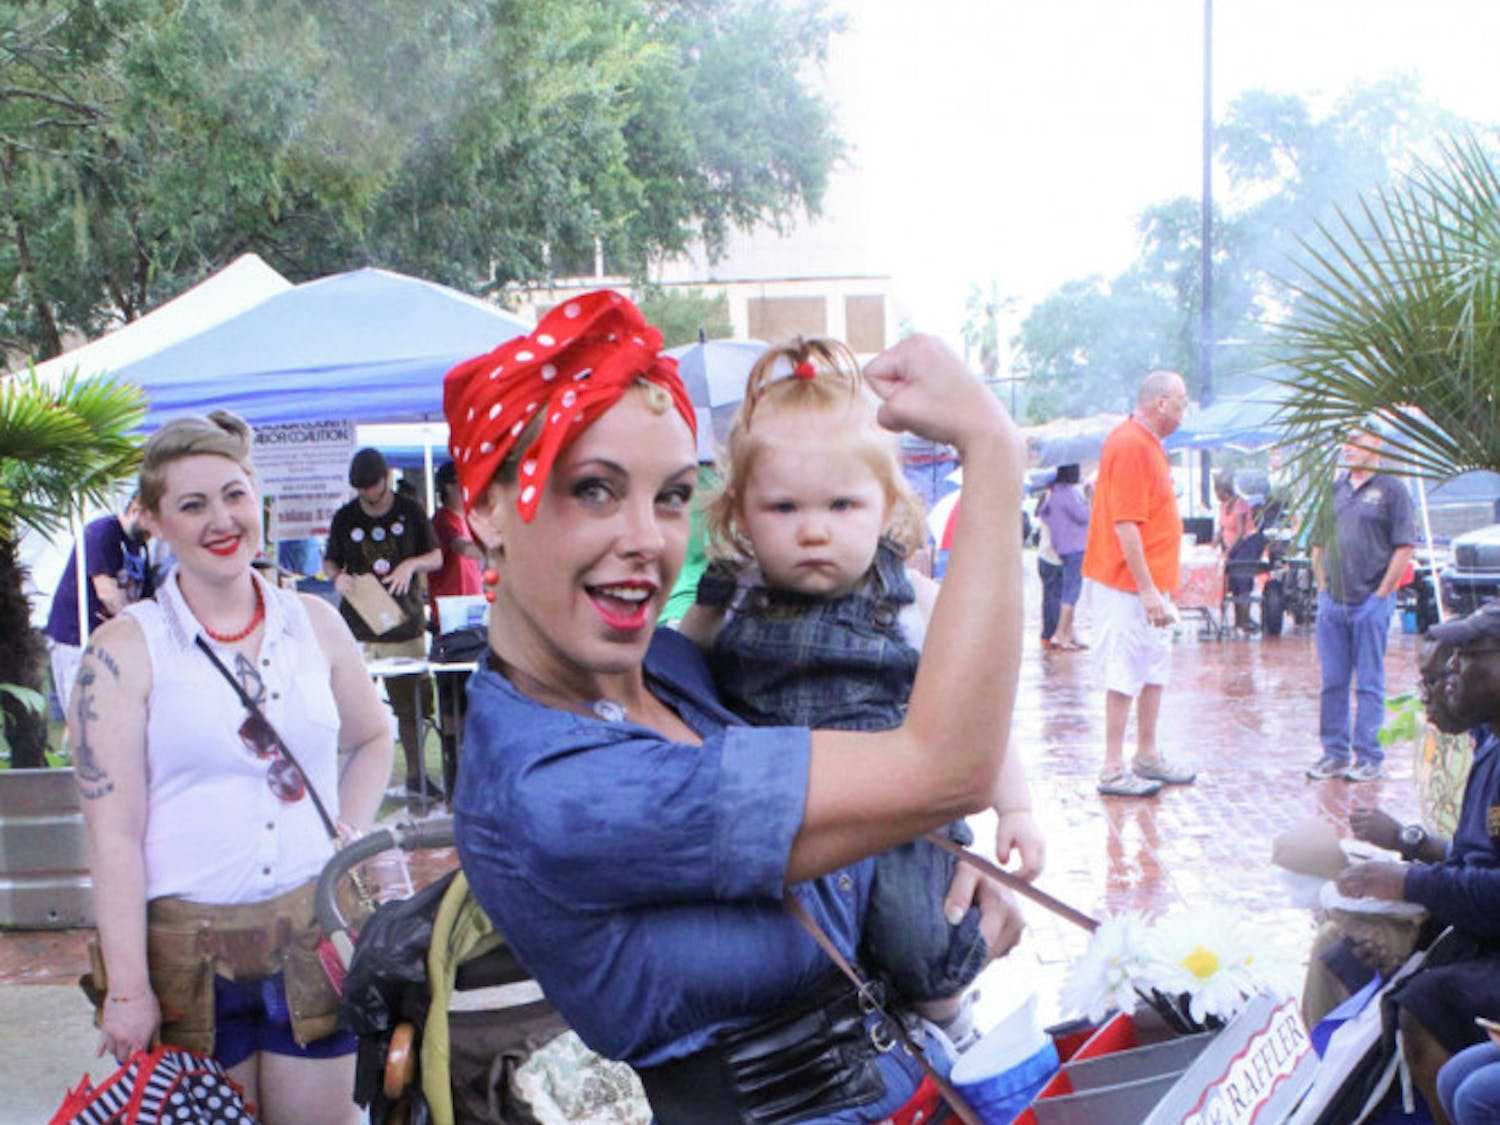 Jill Dumas, a 39-year-old Gainesville resident, sells raffle tickets to festival attendees during the Labor Daze Fest on Sunday. The grand prize winner received up to $500 of their power bill paid for by Gainesville Regional Utilities.